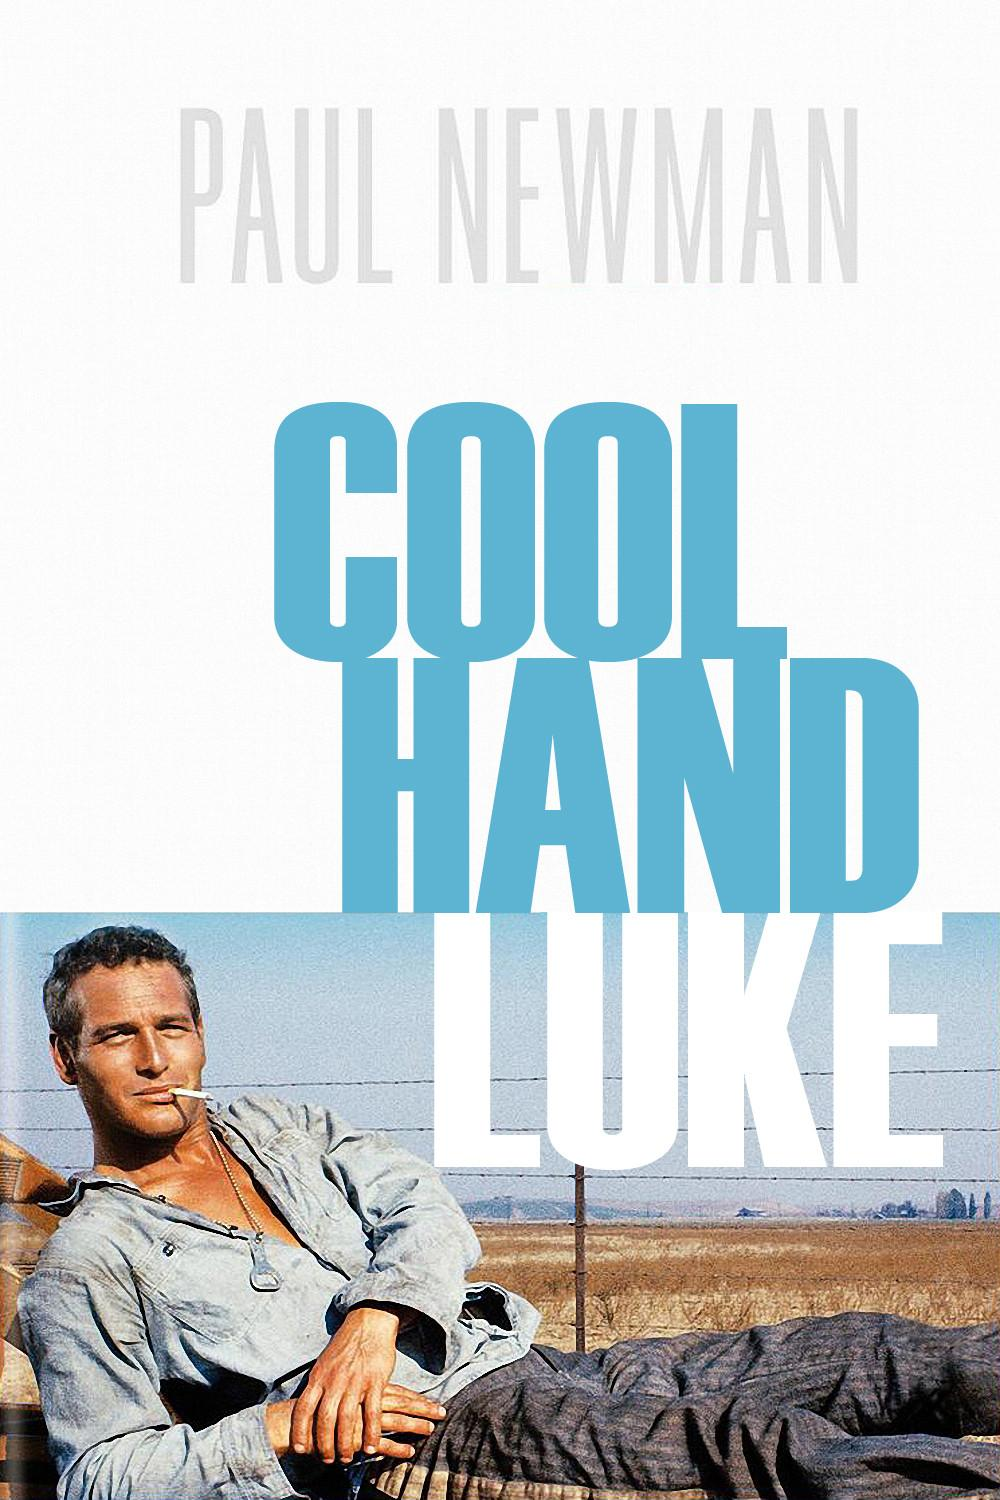 Themes and Topics in Cool Hand Luke